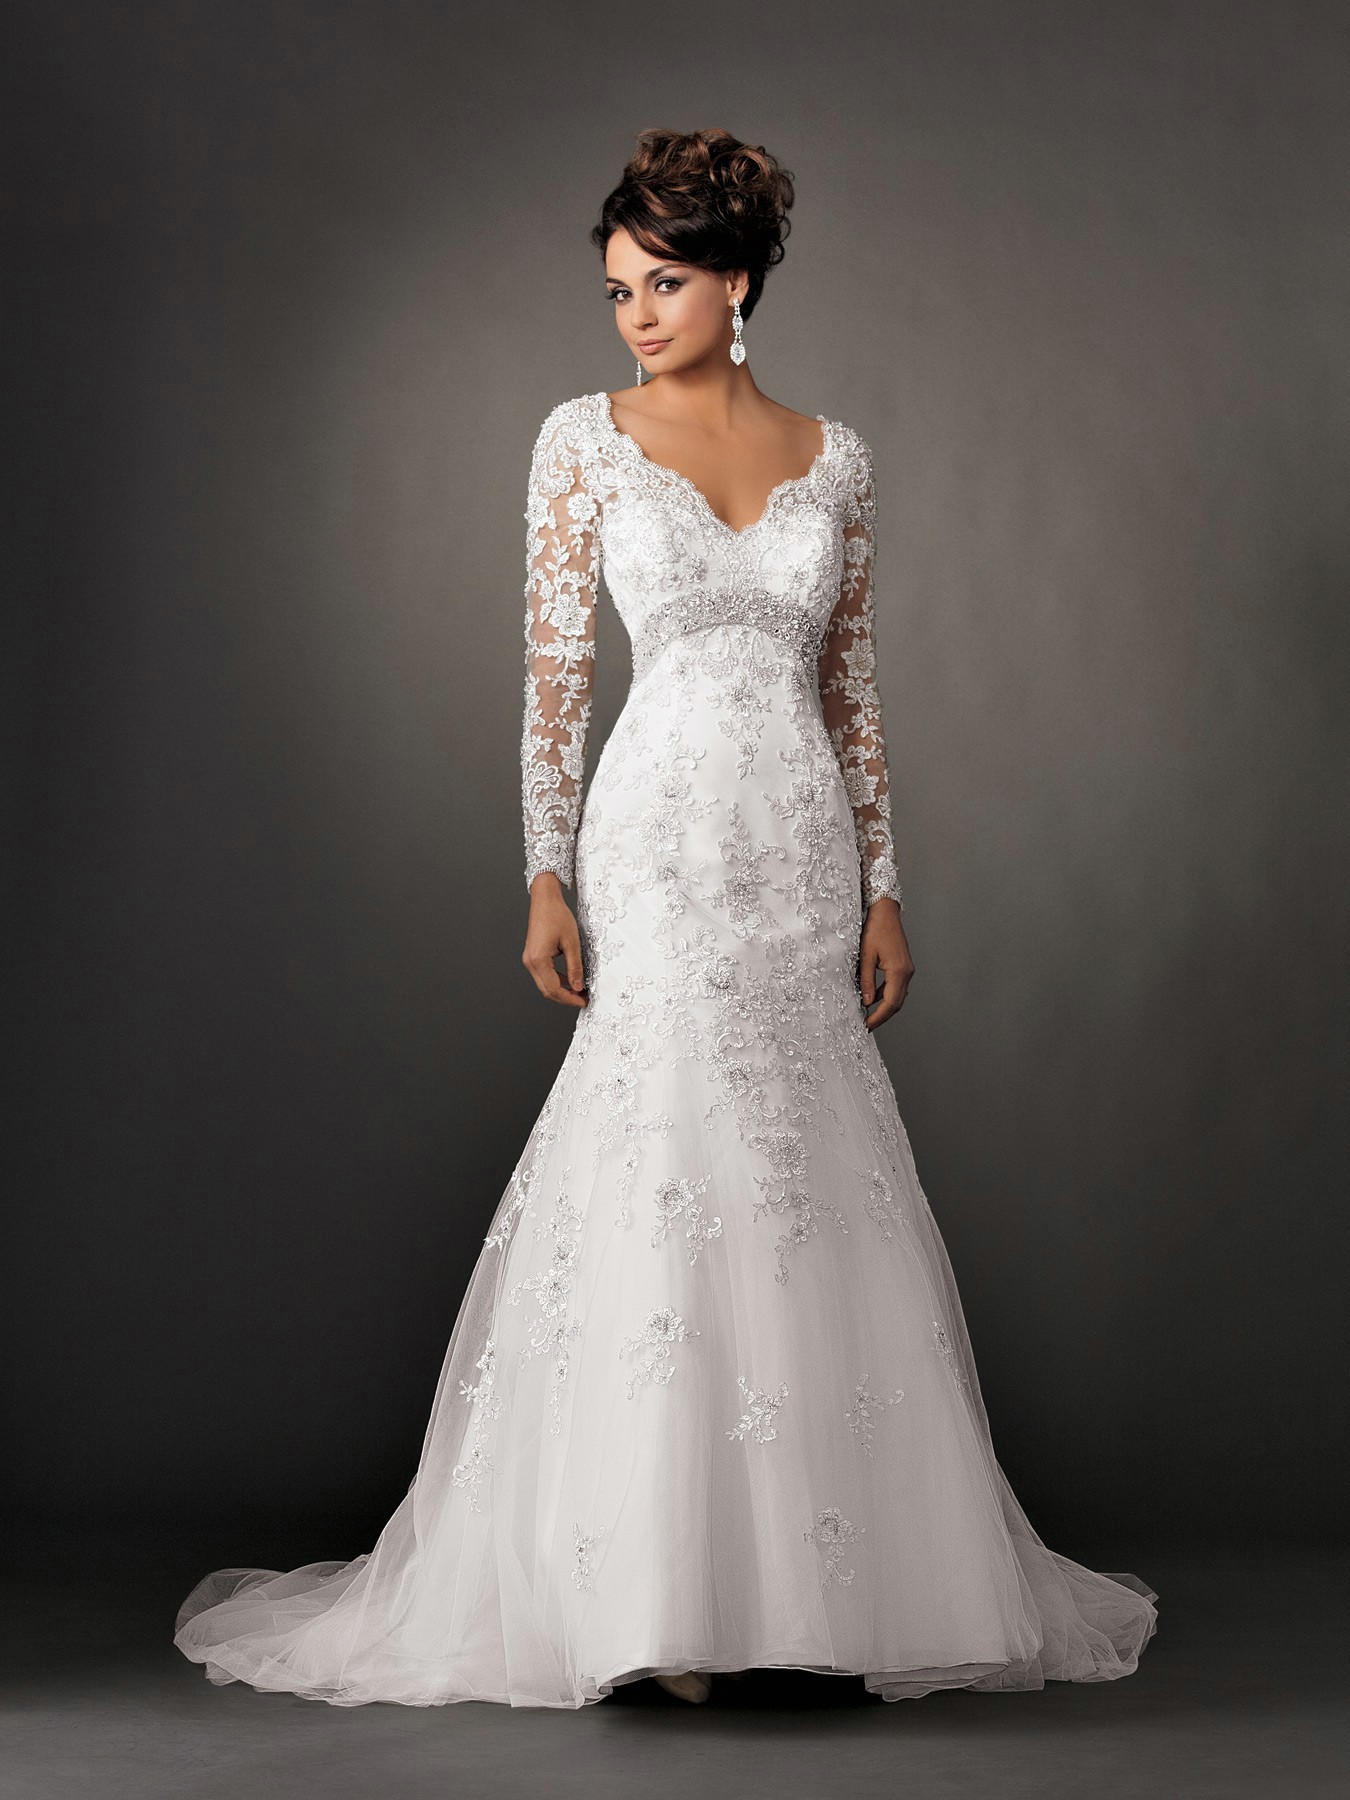 Modest Wedding Dress With Long Lace Sleeves Sang Maestro